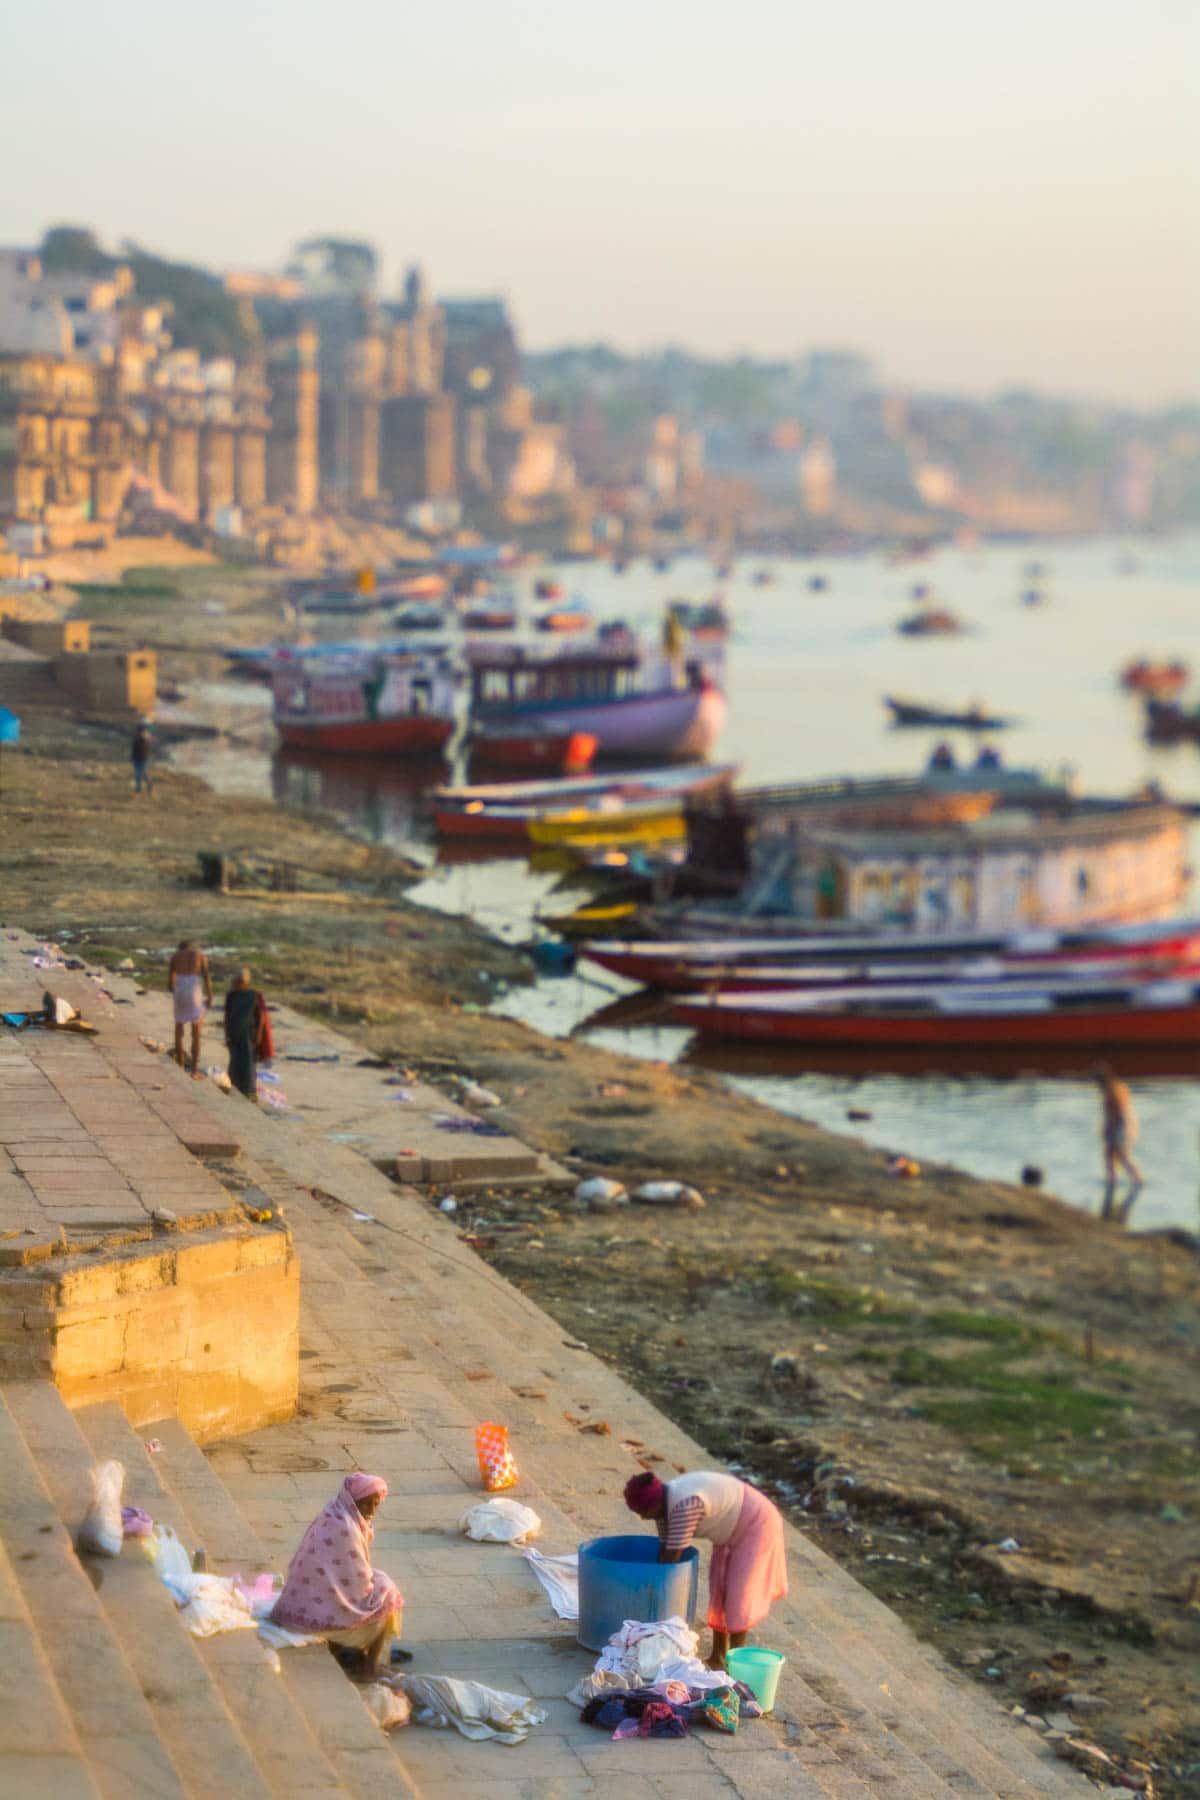 Men doing laundry by the Ganges river in Varanasi, India at sunrise. Shot with a Lensbaby Edge 50 Optic.